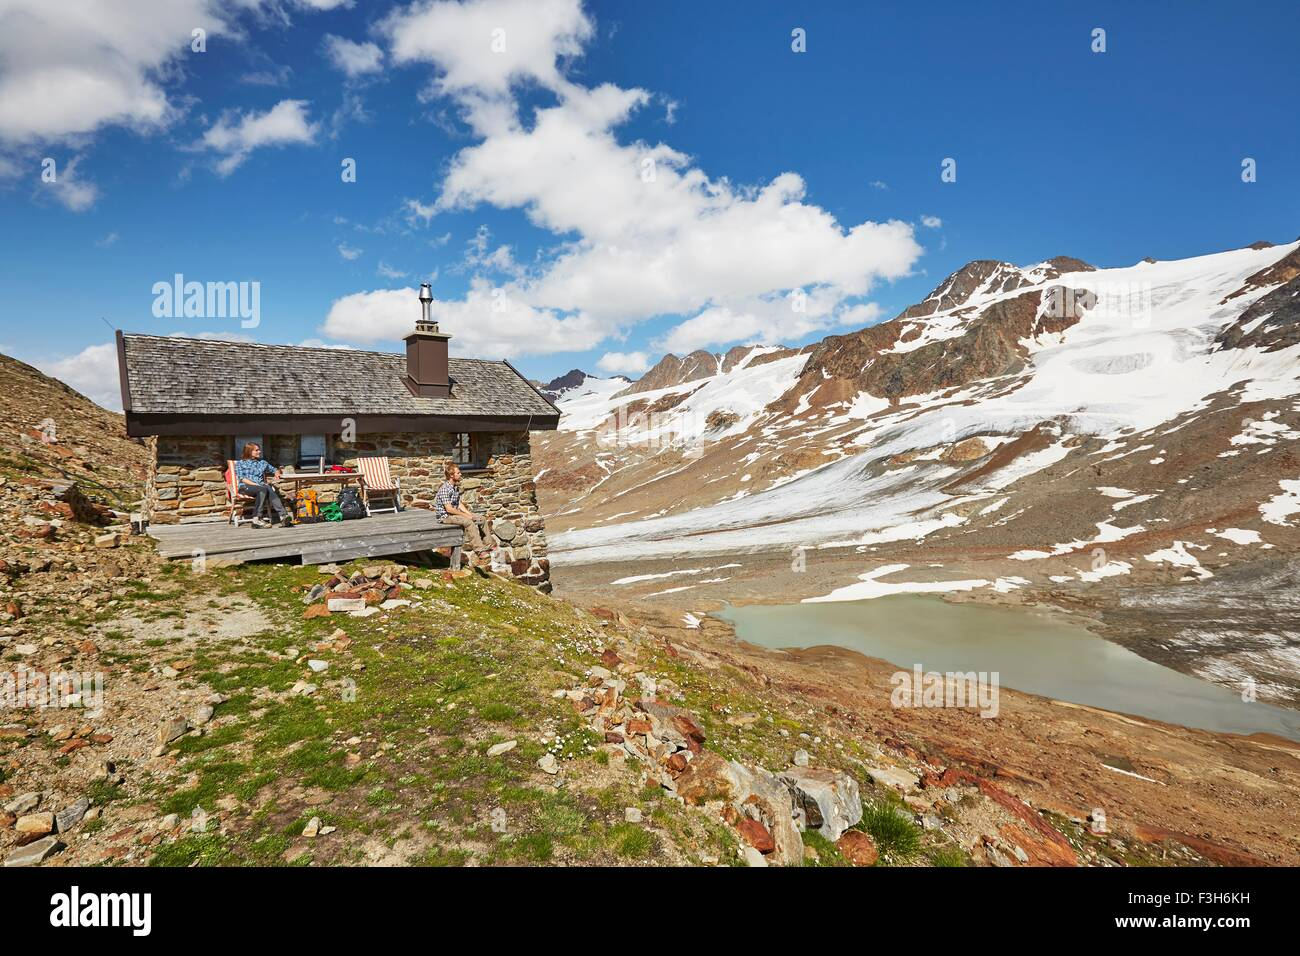 Young hiking couple taking a break outside hut, Val Senales Glacier, Val Senales, South Tyrol, Italy Stock Photo